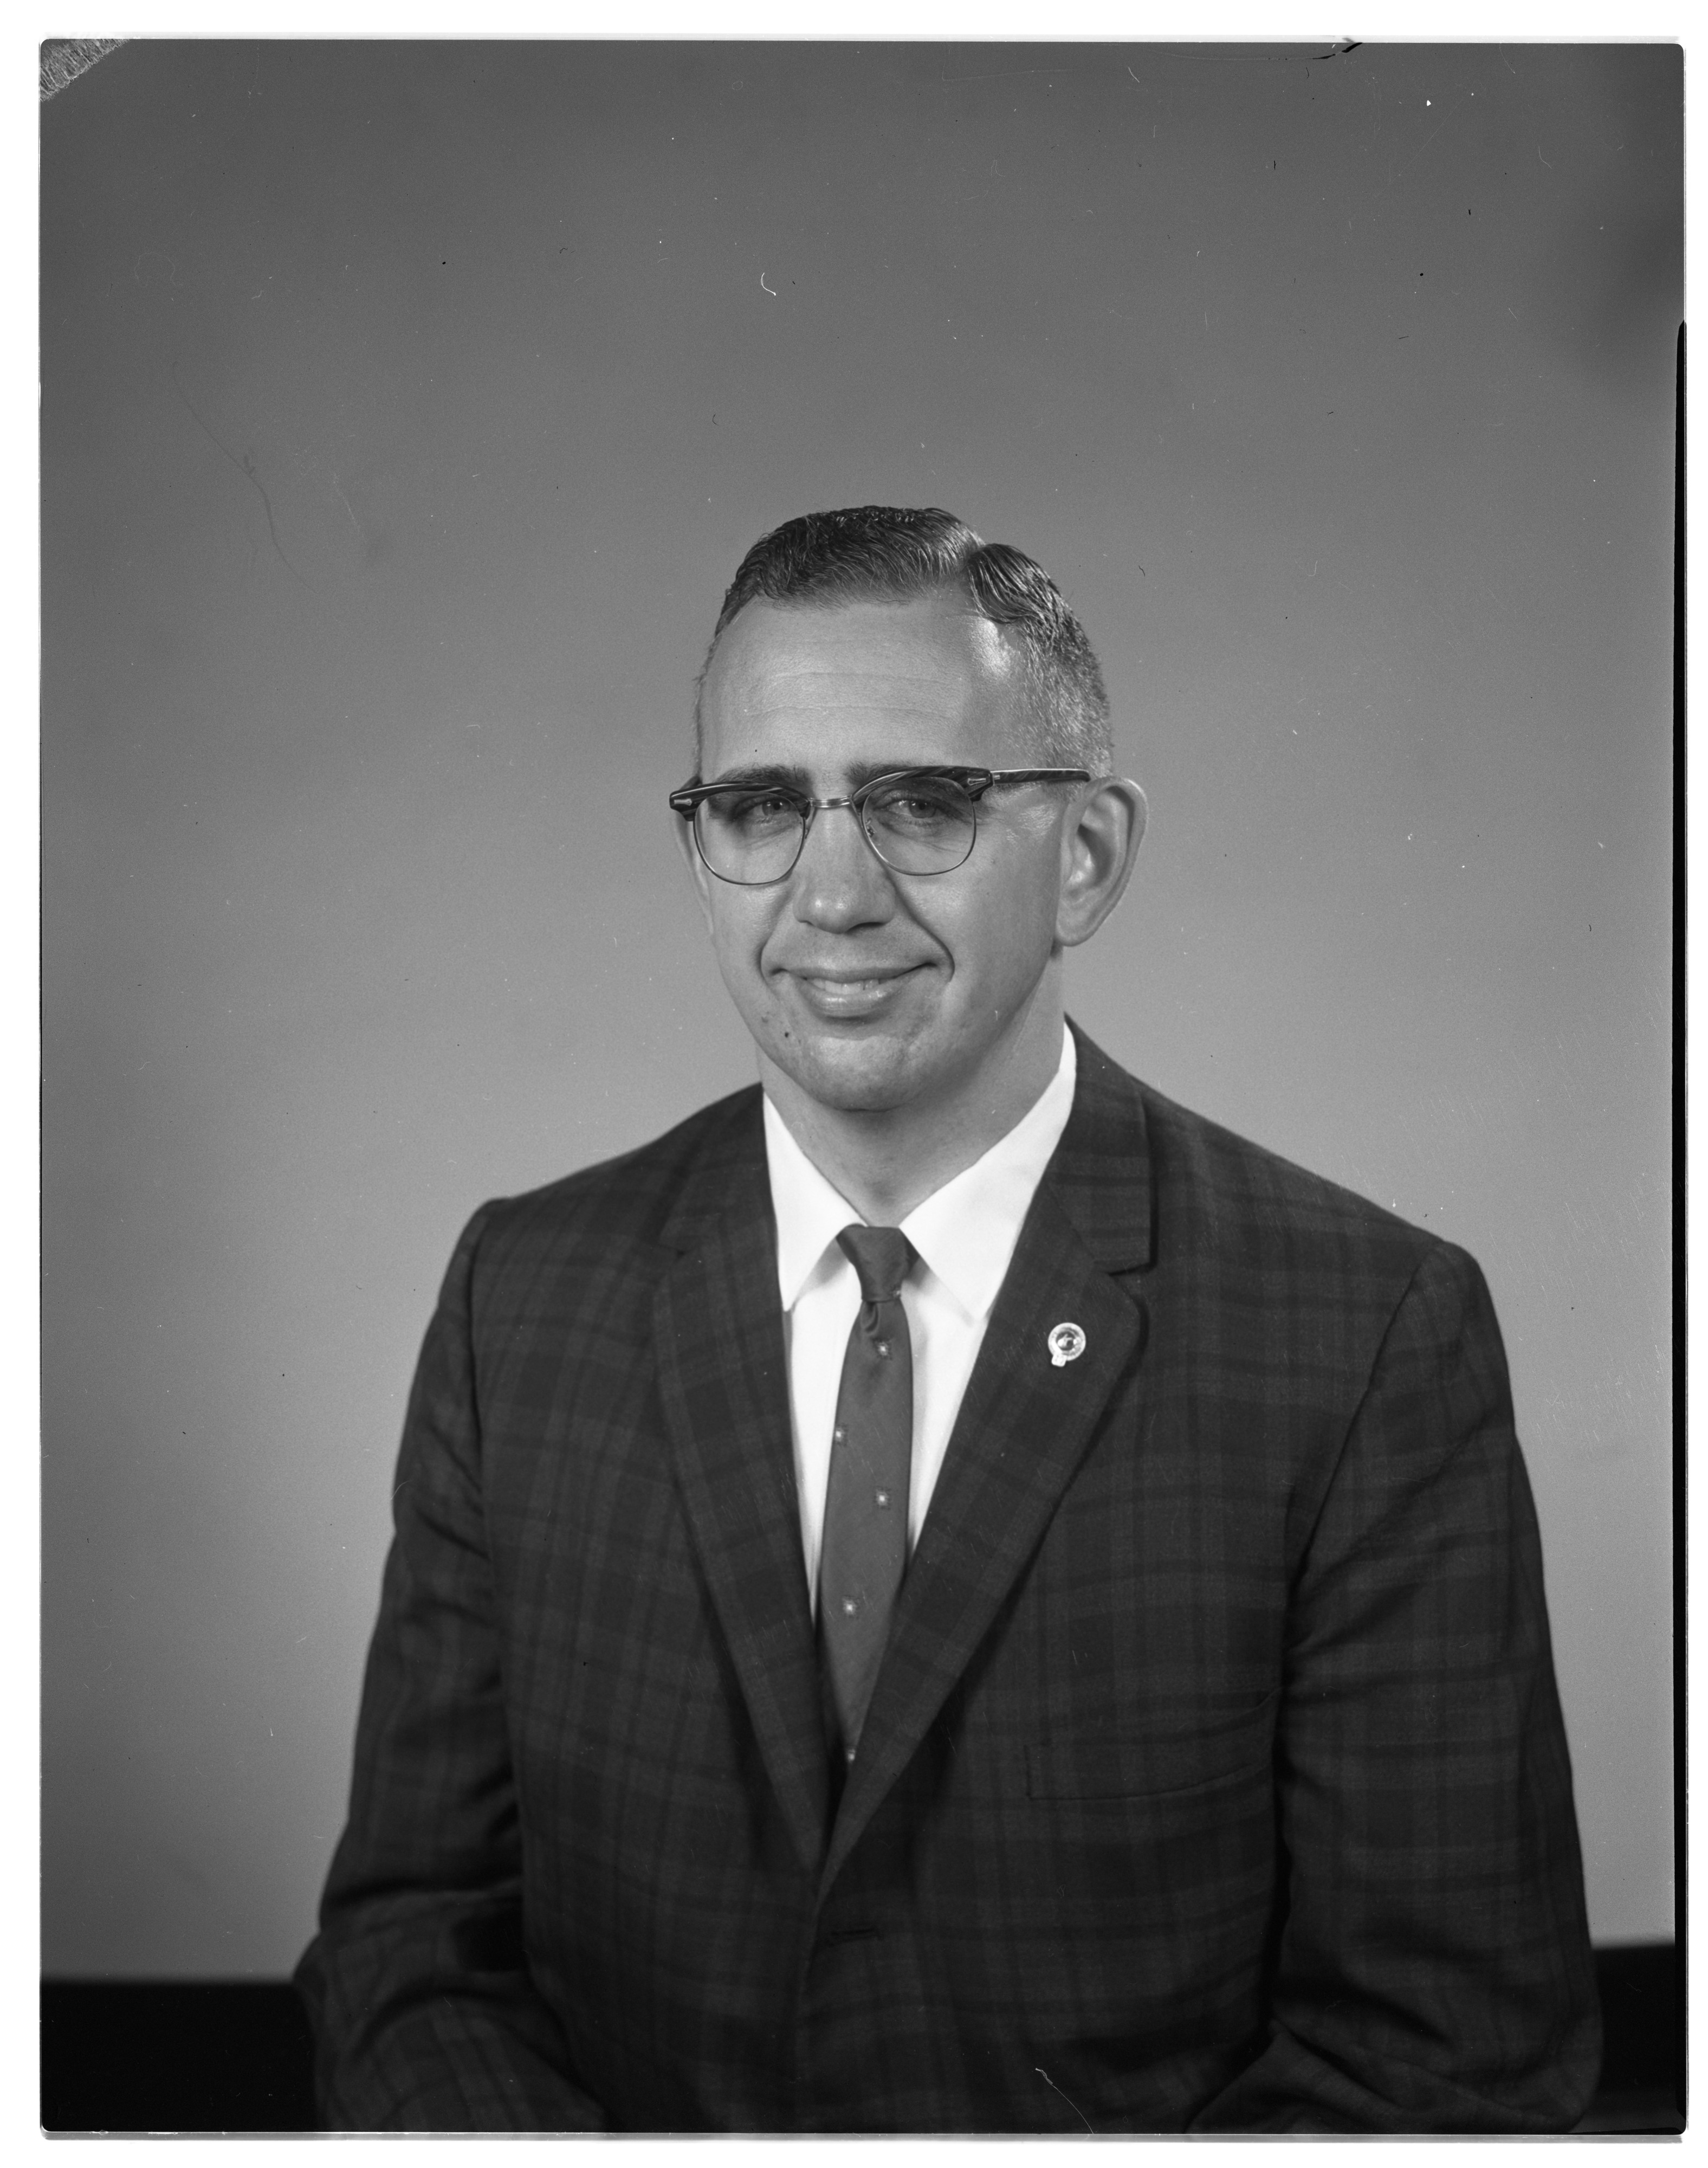 Fred E. Stein Elected President of Kiwanis Club of Ann Arbor, October 1962 image